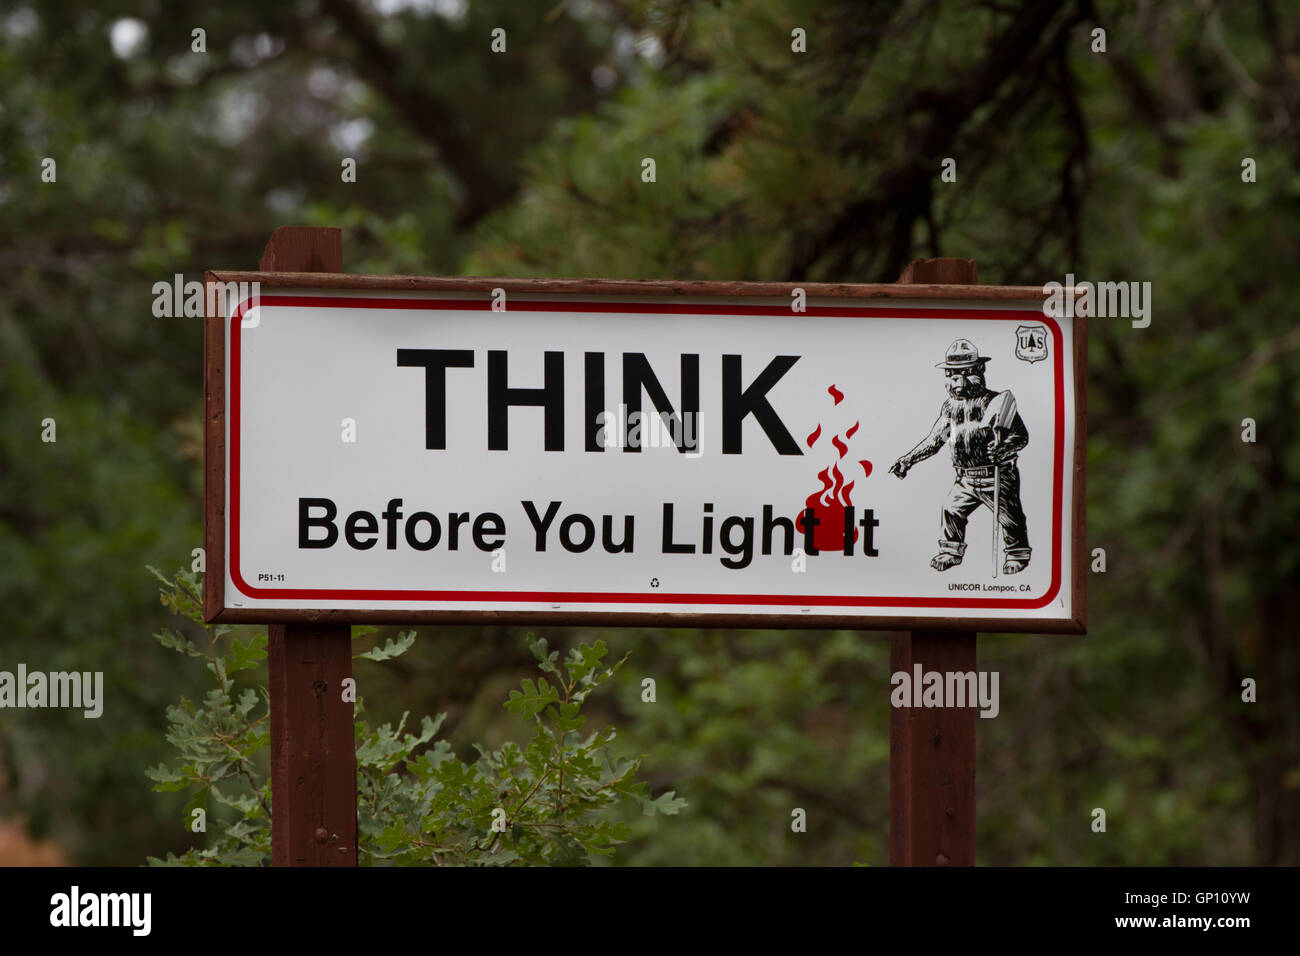 Think Before You Light fire safety sign USA - Stock Image